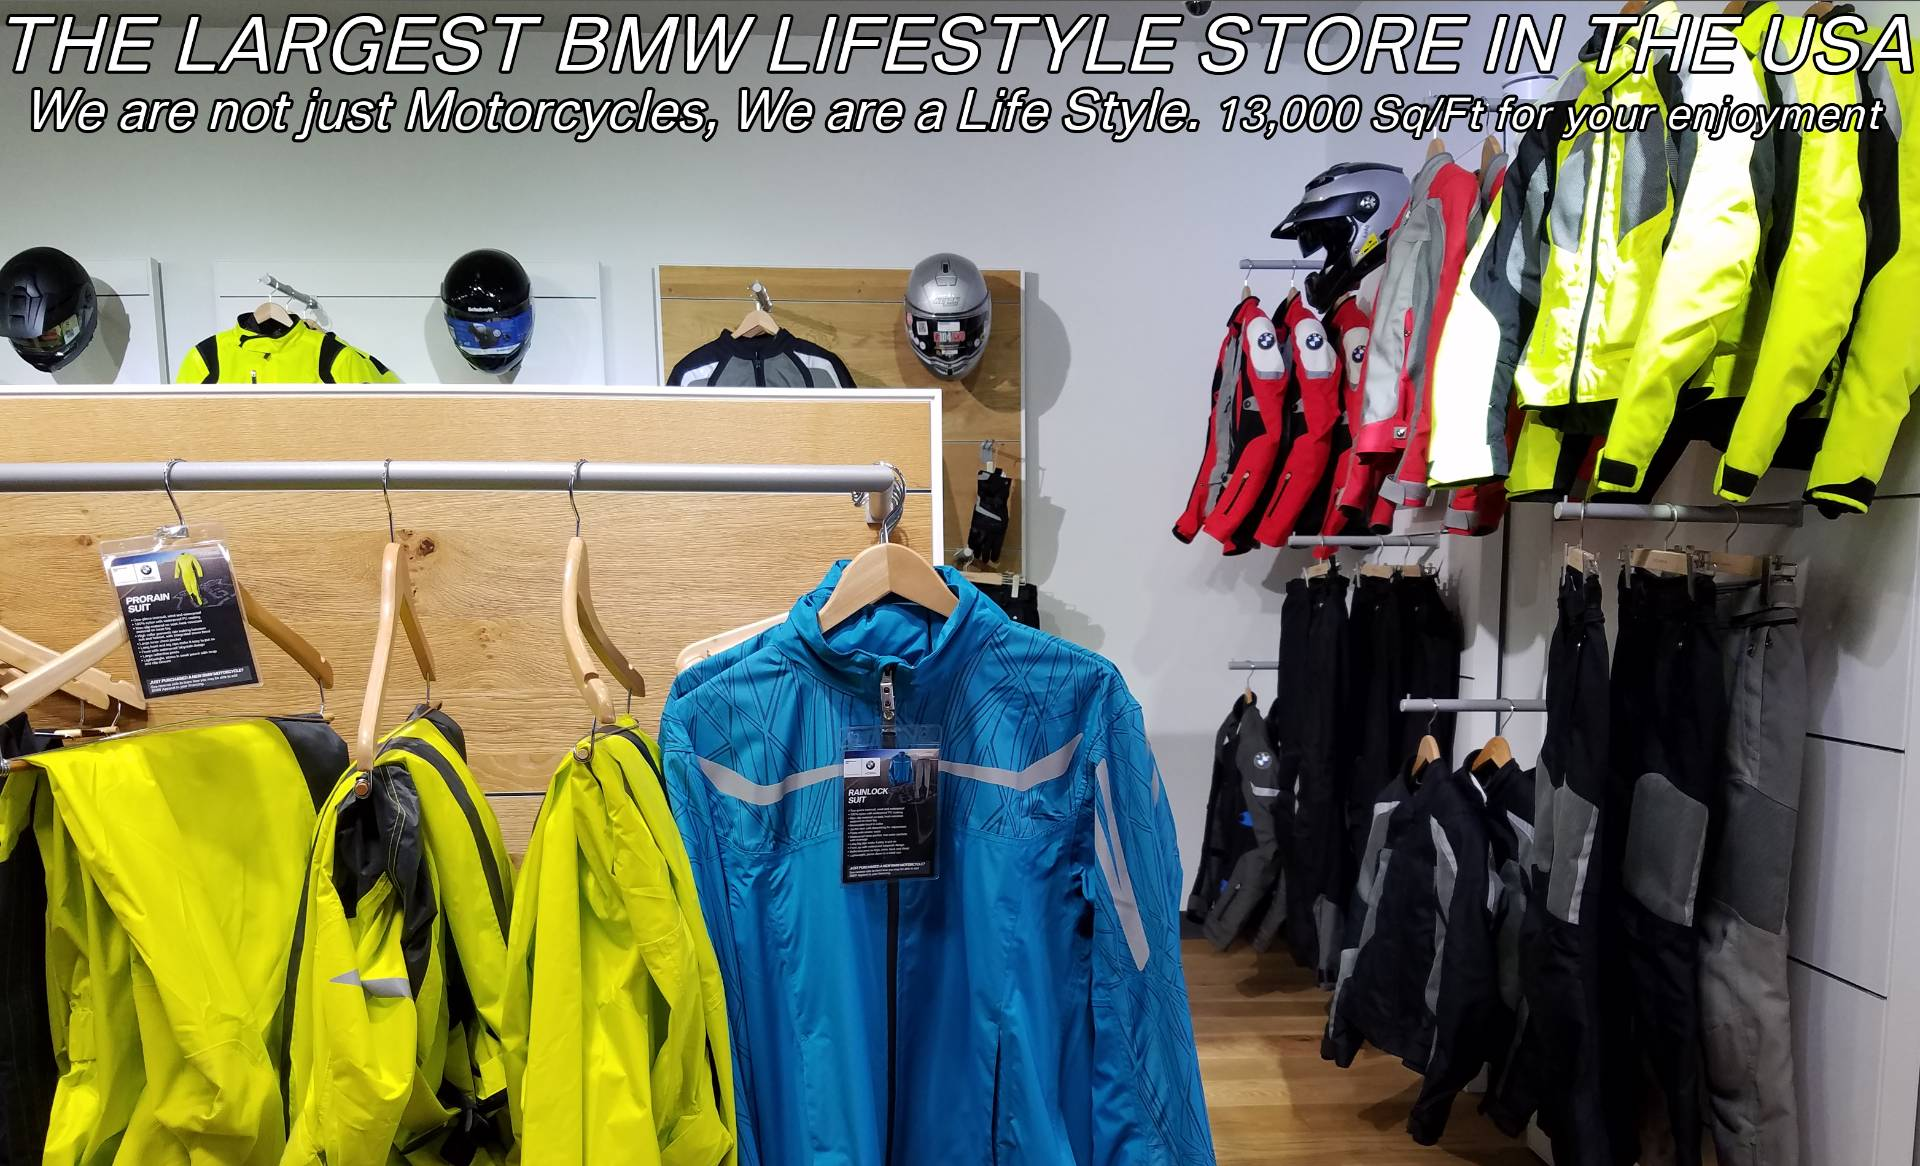 Used 2014 BMW R 1200 GS for sale, Pre-owned BMW R1200GS for sale, BMW Motorcycle Adventure, used BMW GS Fire Blue, BMW Motorcycles of Miami, Motorcycles of Miami, Motorcycles Miami, New Motorcycles, Used Motorcycles, pre-owned. #BMWMotorcyclesOfMiami #MotorcyclesOfMiami - Photo 44